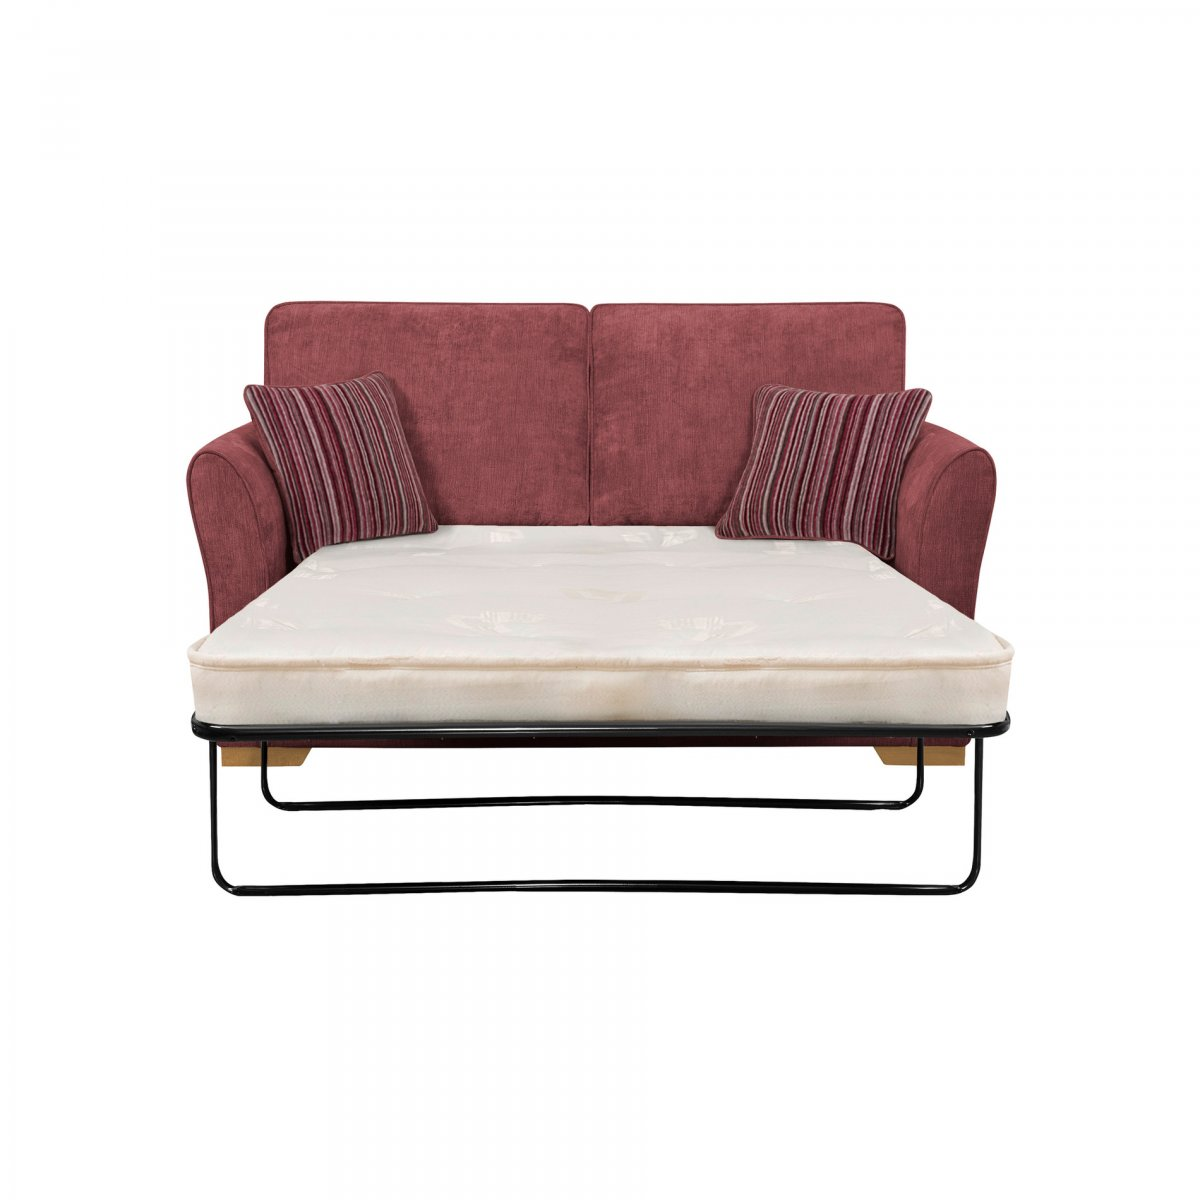 plum sofas uk what colour walls go with blue sofa jasmine 2 seater bed deluxe mattress in